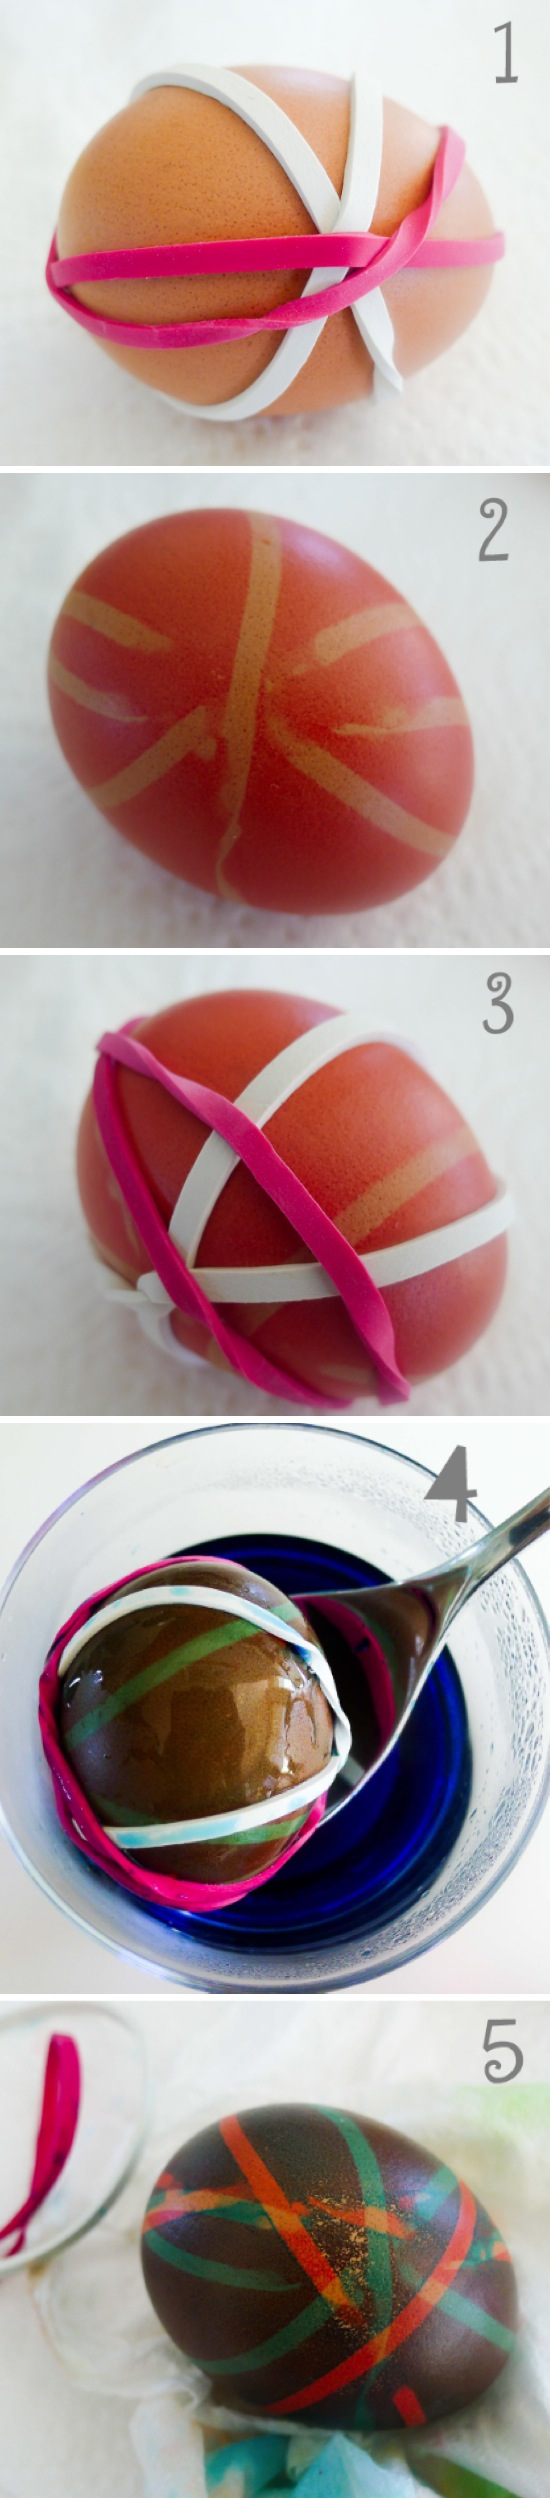 Rubber Band Easter Egg Trick | Easter Crafts